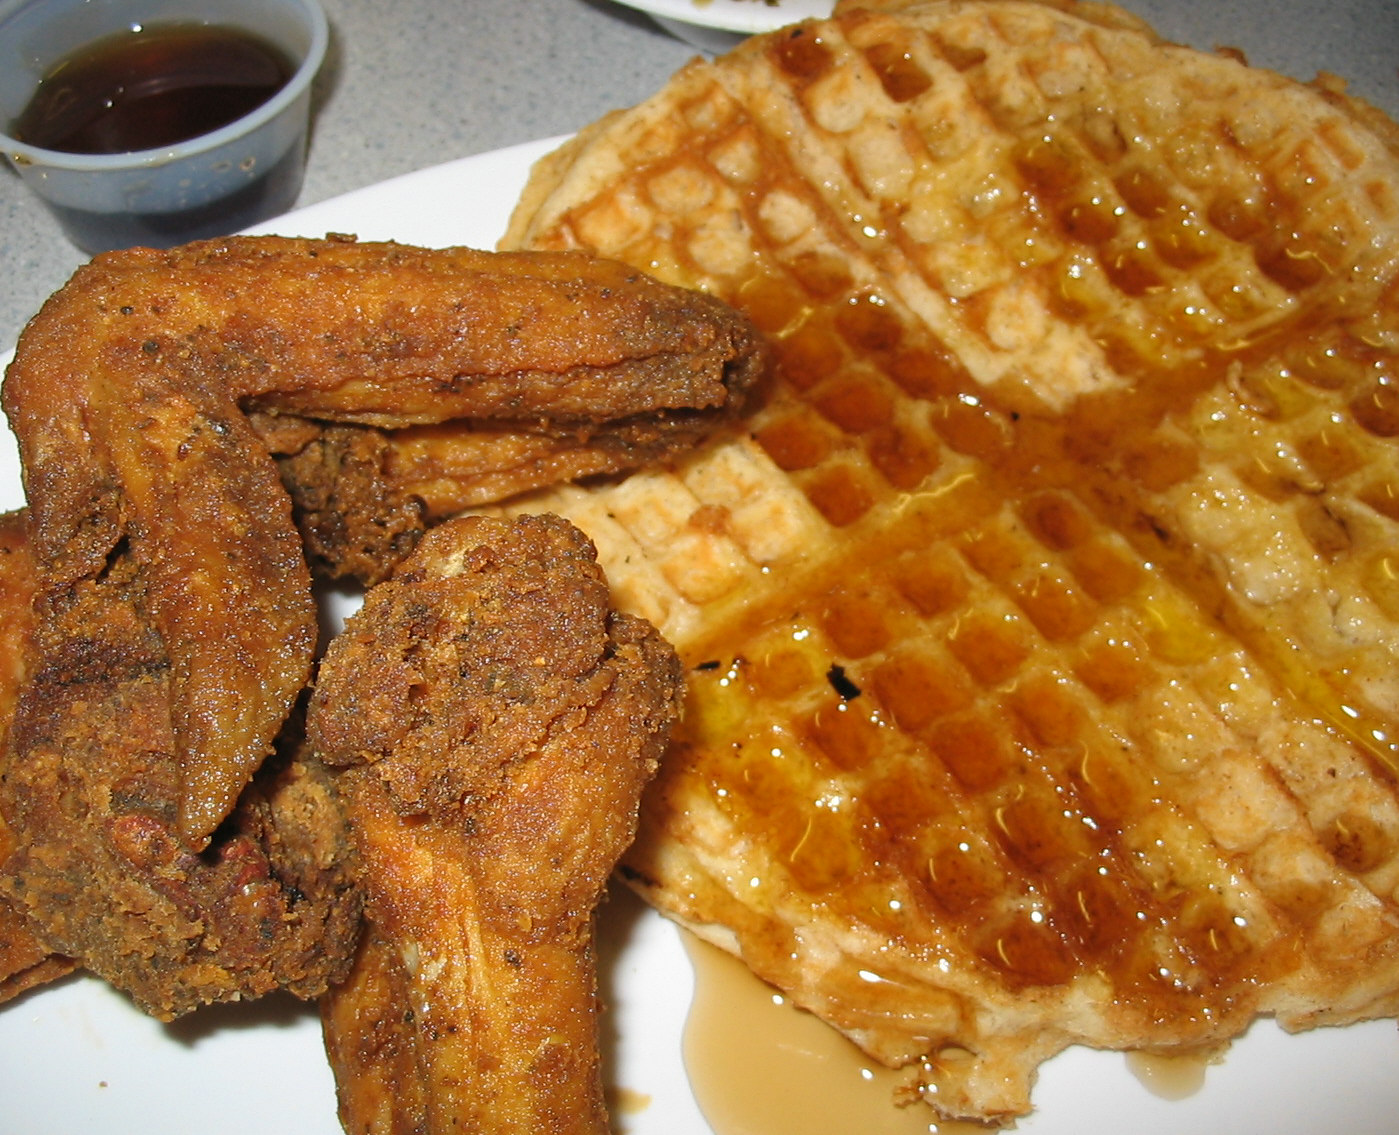 Fried Chicken And Waffles: The BOX: Is Serving Fried Chicken And Waffles On MLK Jr